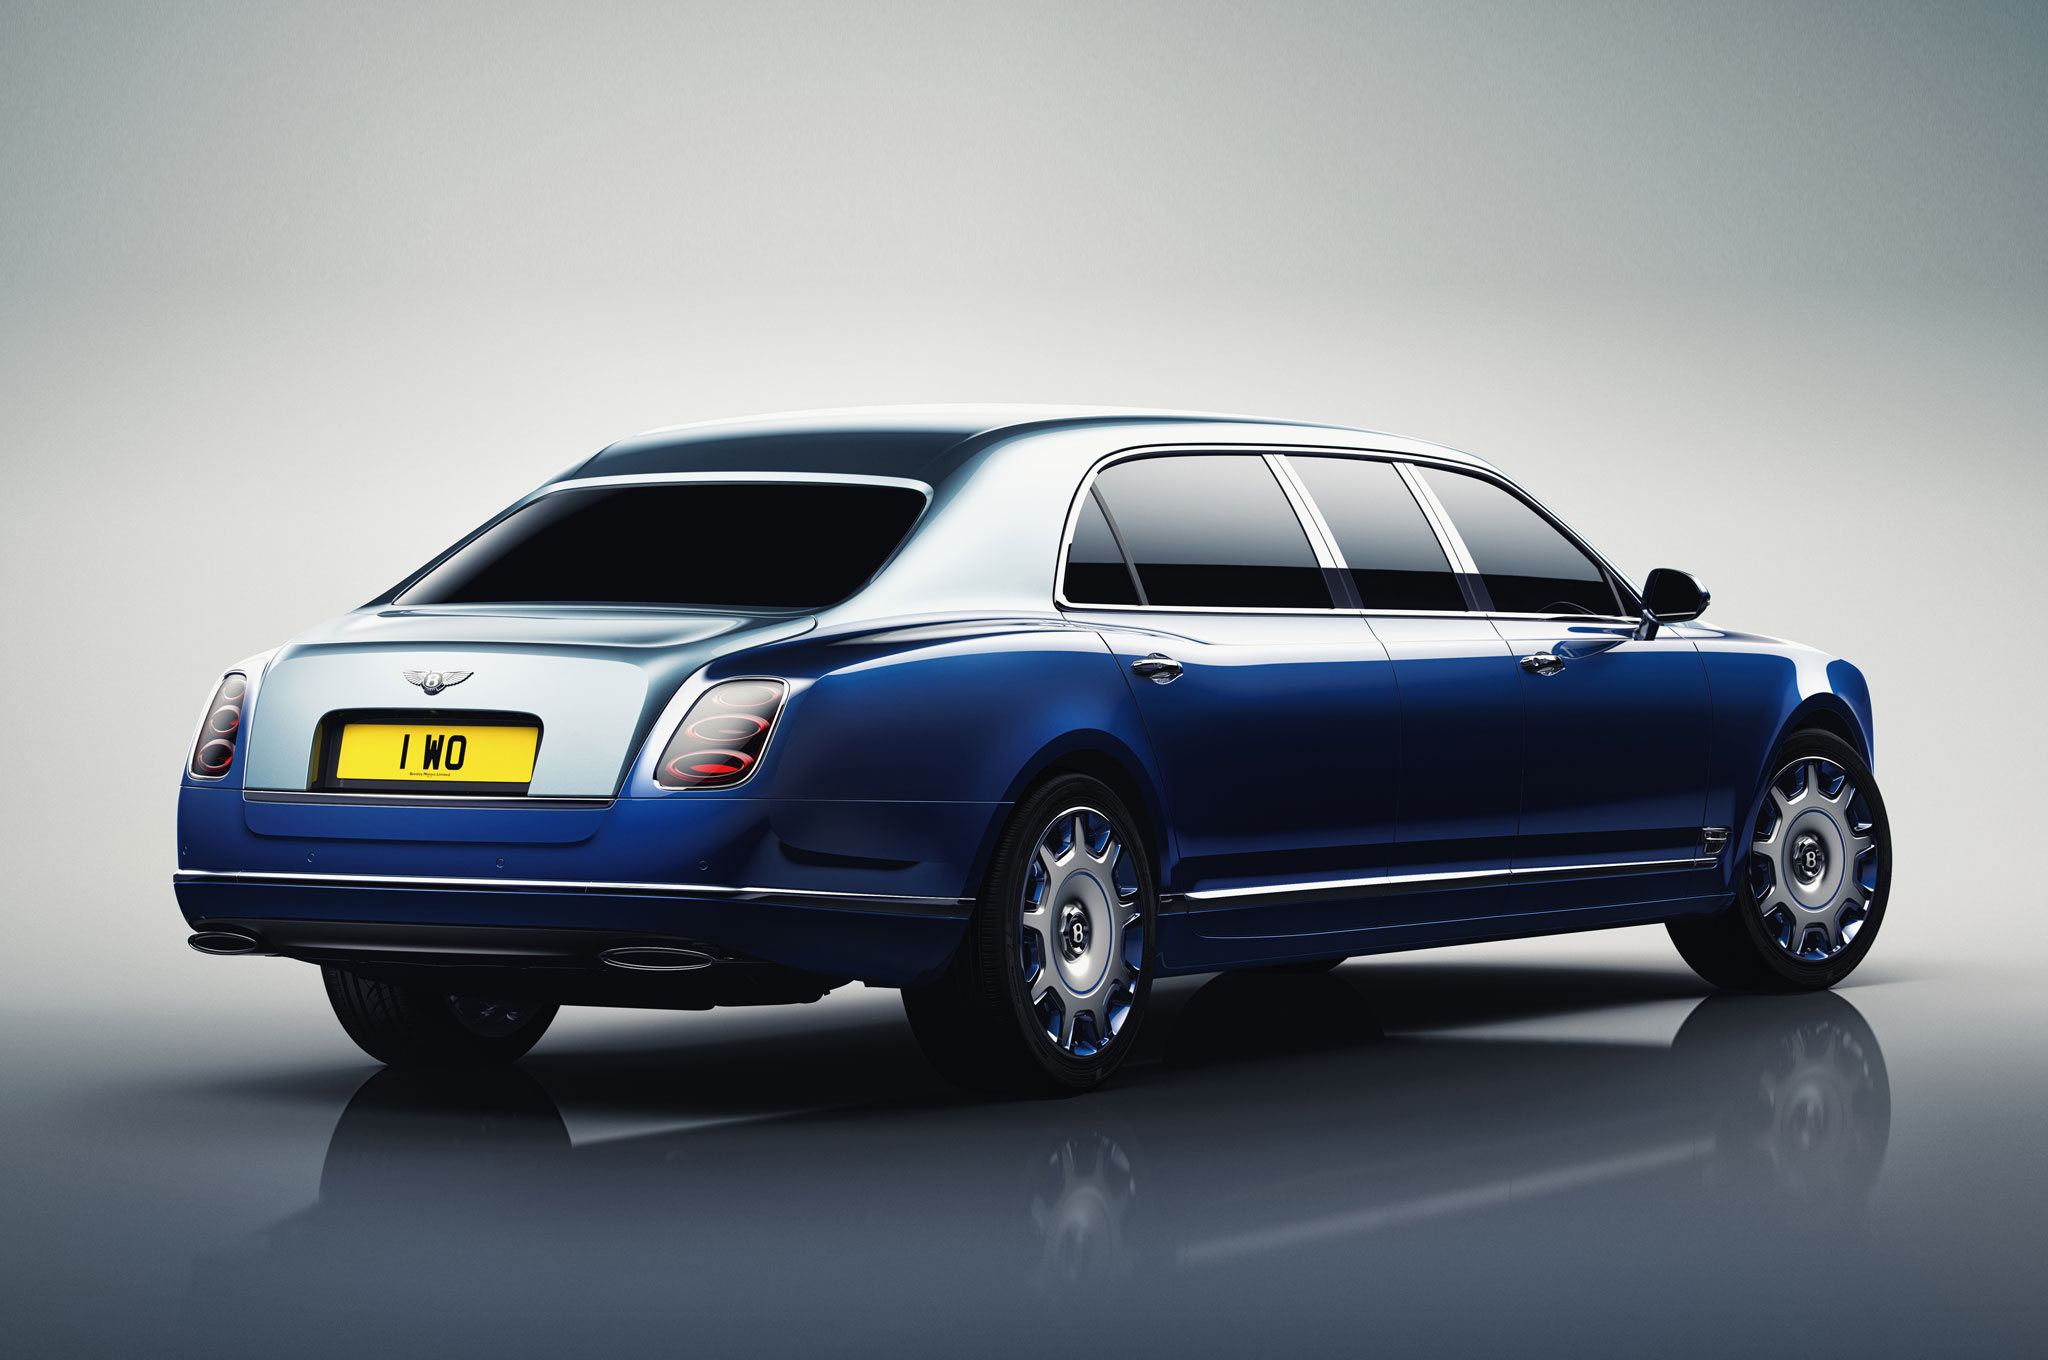 bentley mulsanne grand limousine is an ultra lux six. Black Bedroom Furniture Sets. Home Design Ideas